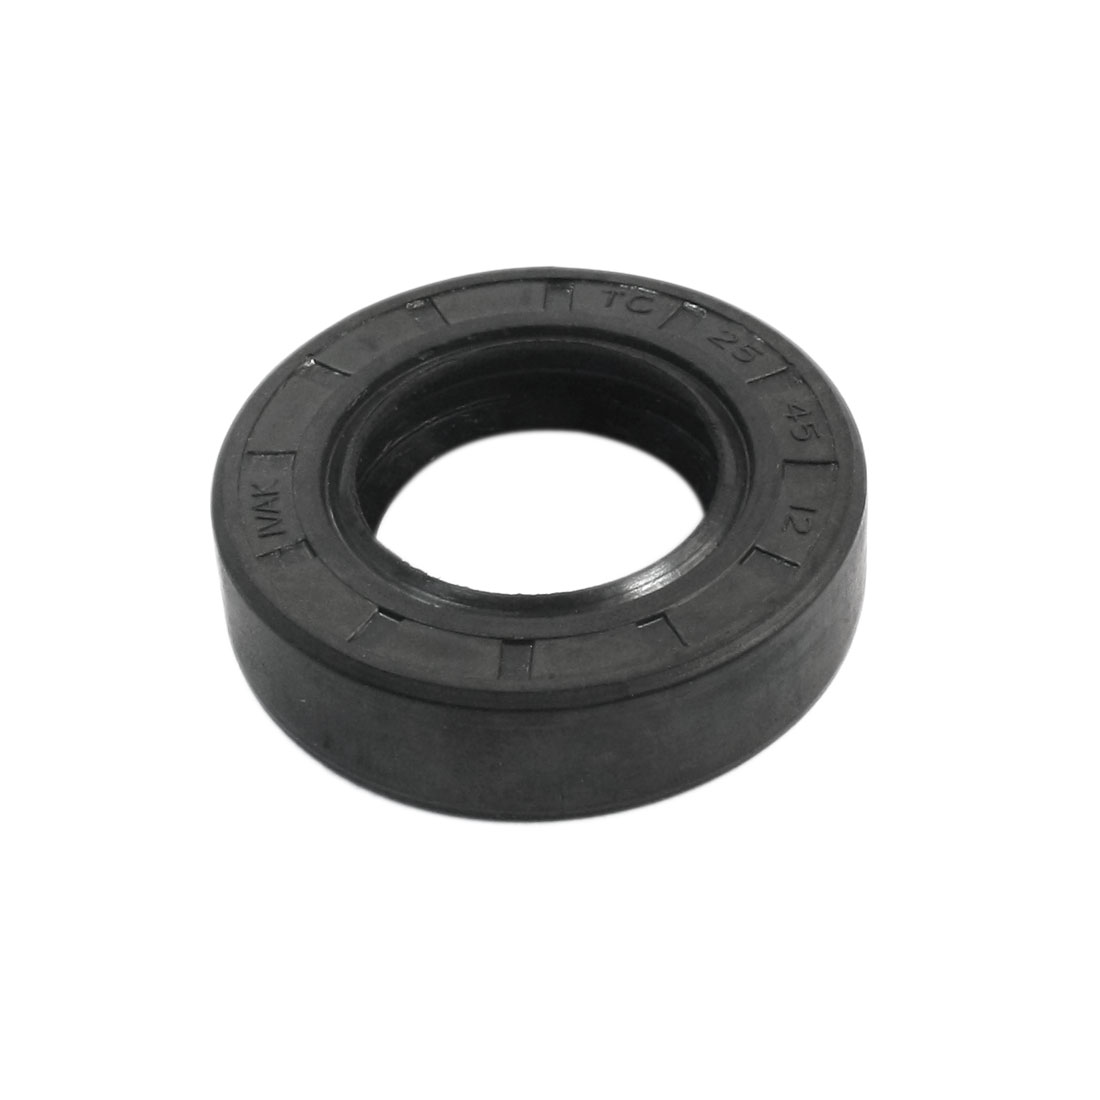 Car Metric Shaft TC Oil Seal Single Lip 45x24x10mm w Garter Spring